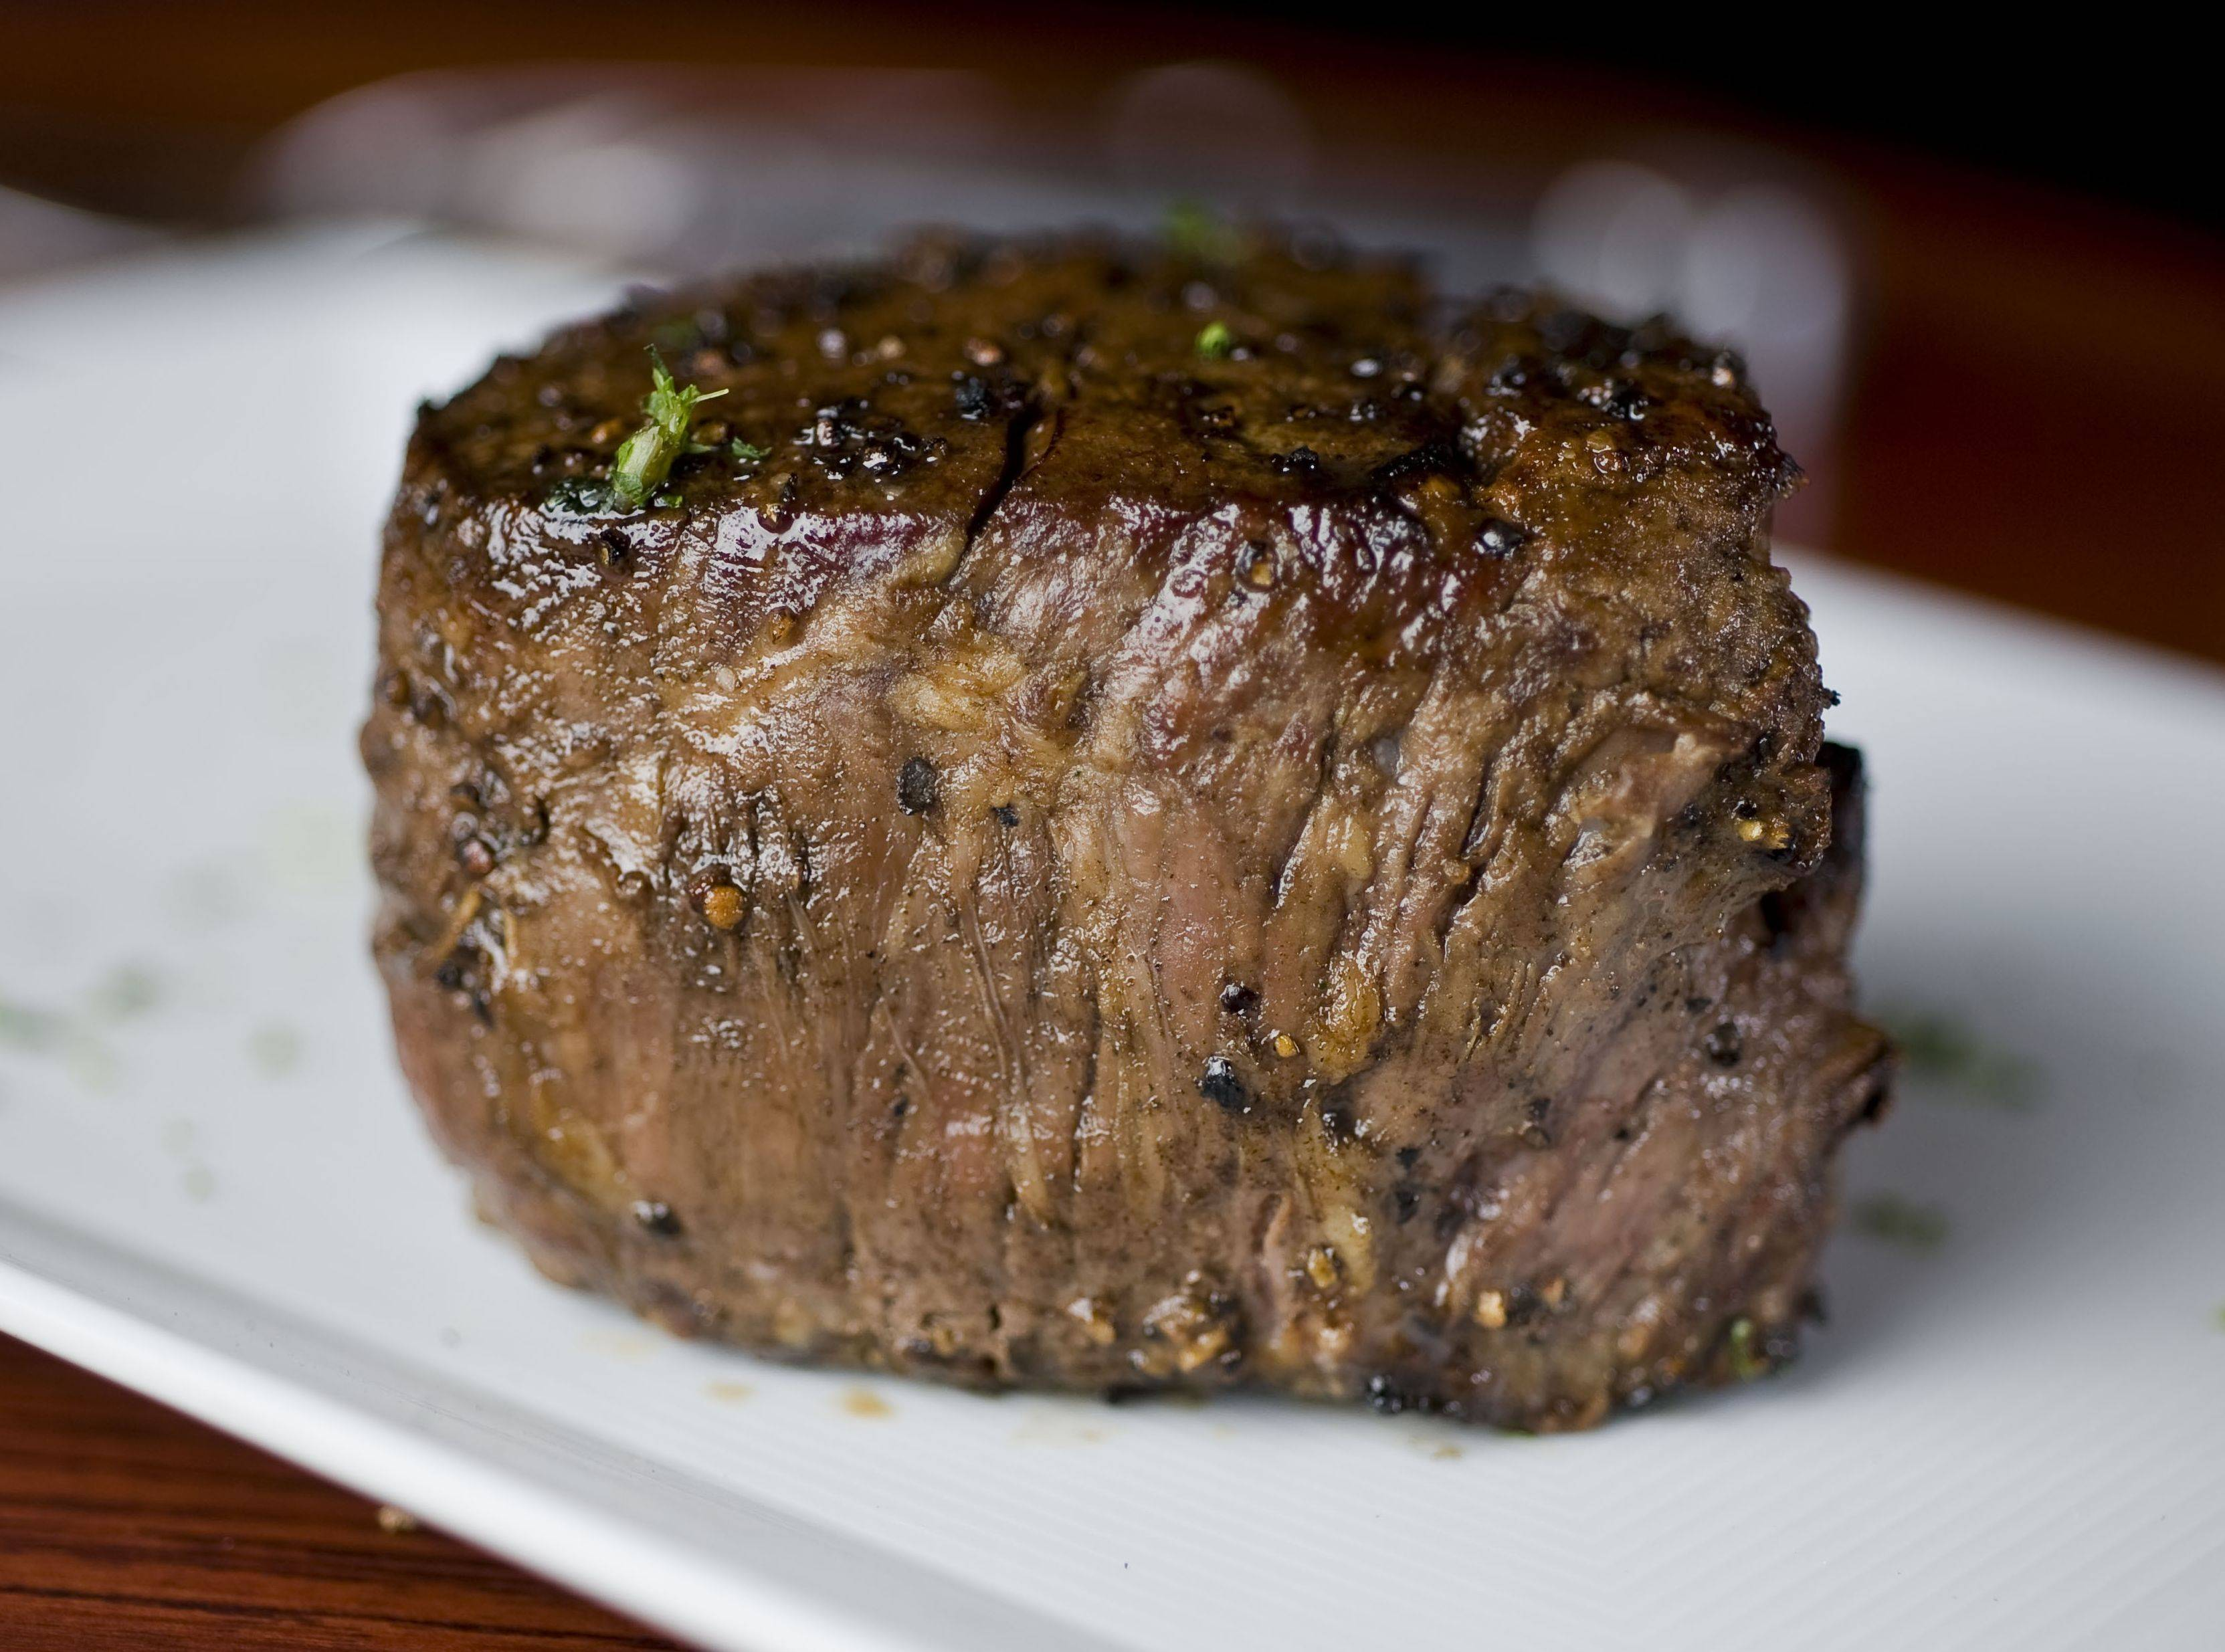 Filet mignon at Sullivan's Steakhouse